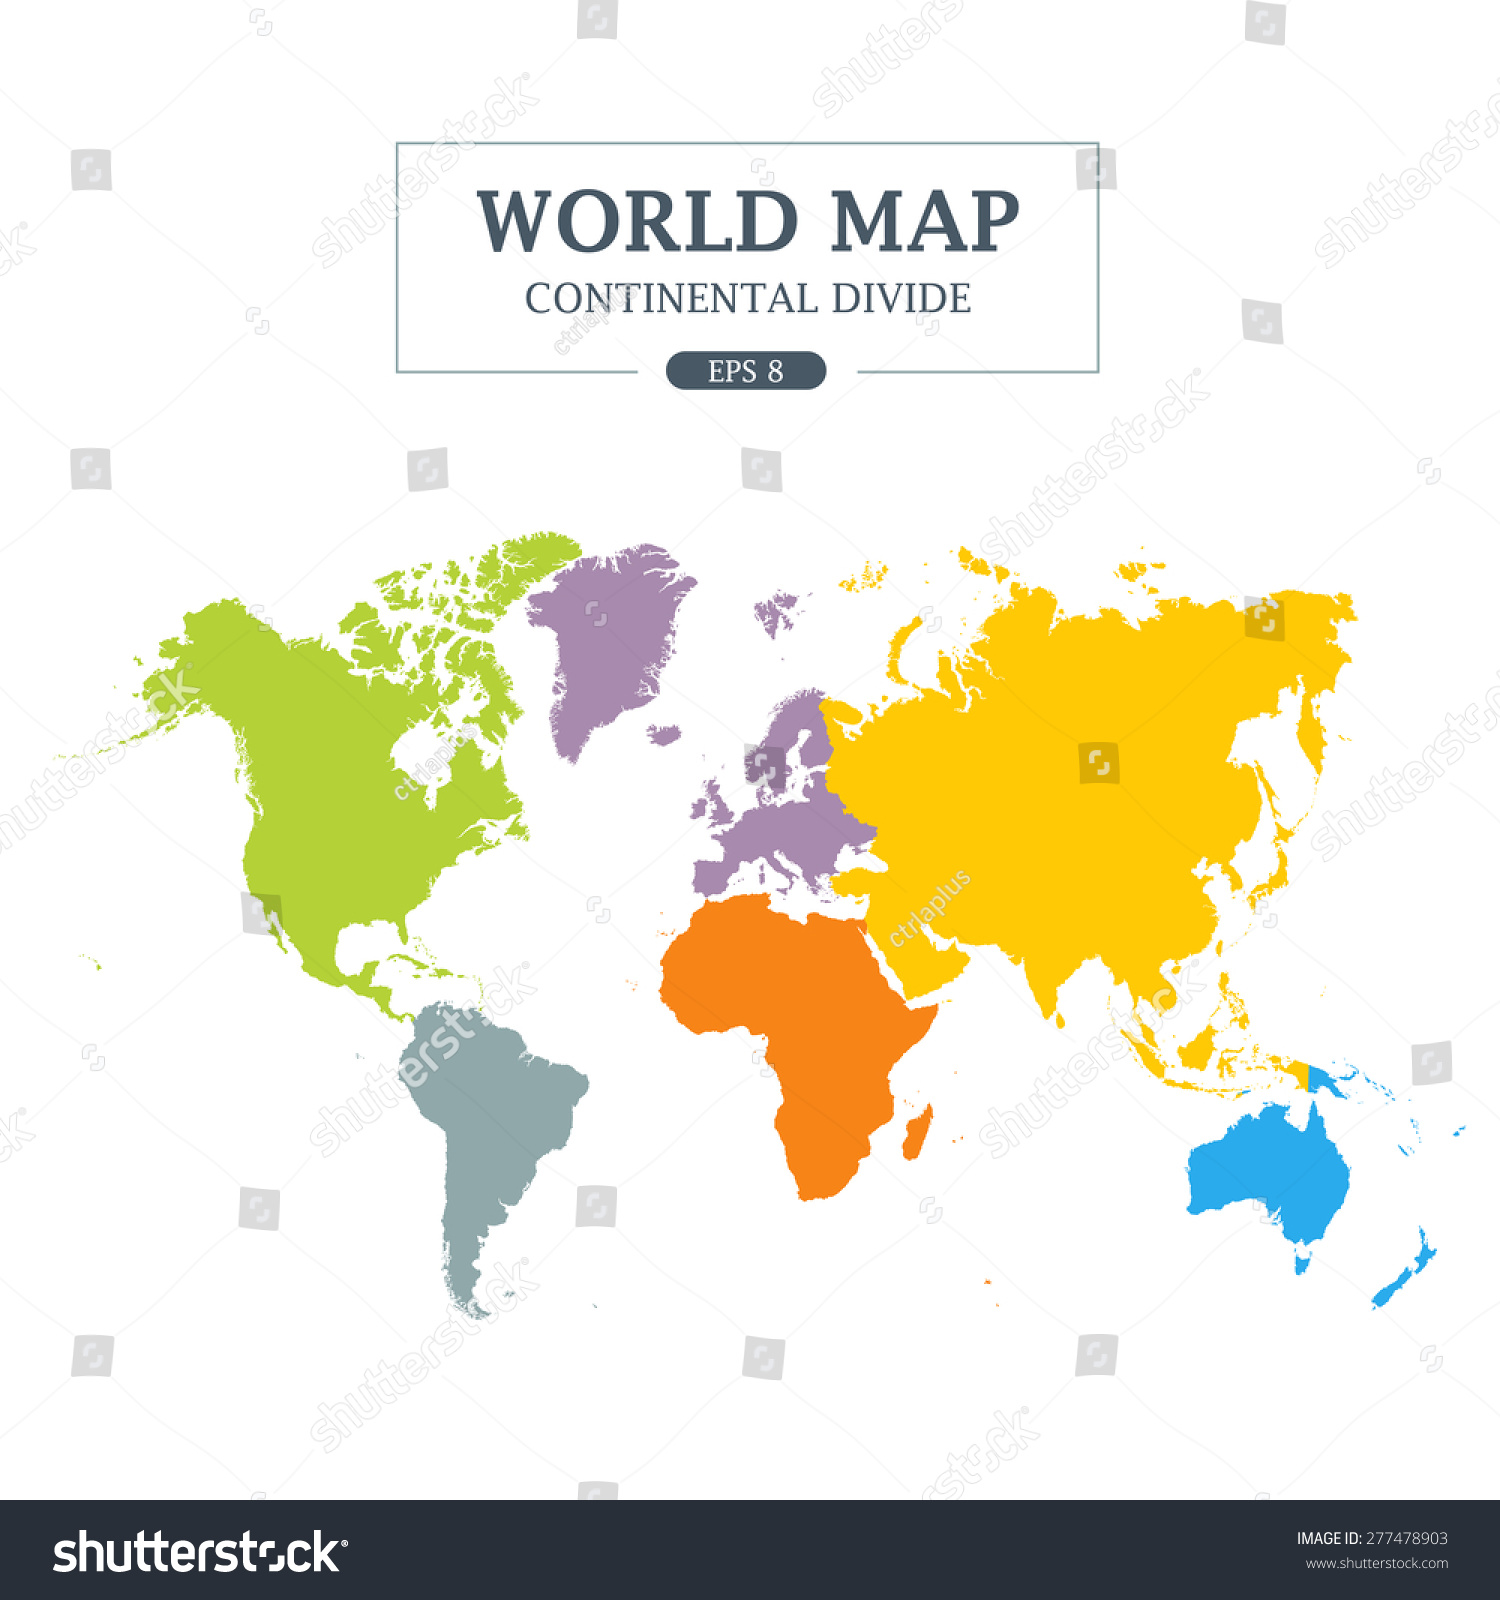 World map continental divide full color vectores en stock 277478903 world map continental divide full color vector illustration gumiabroncs Gallery